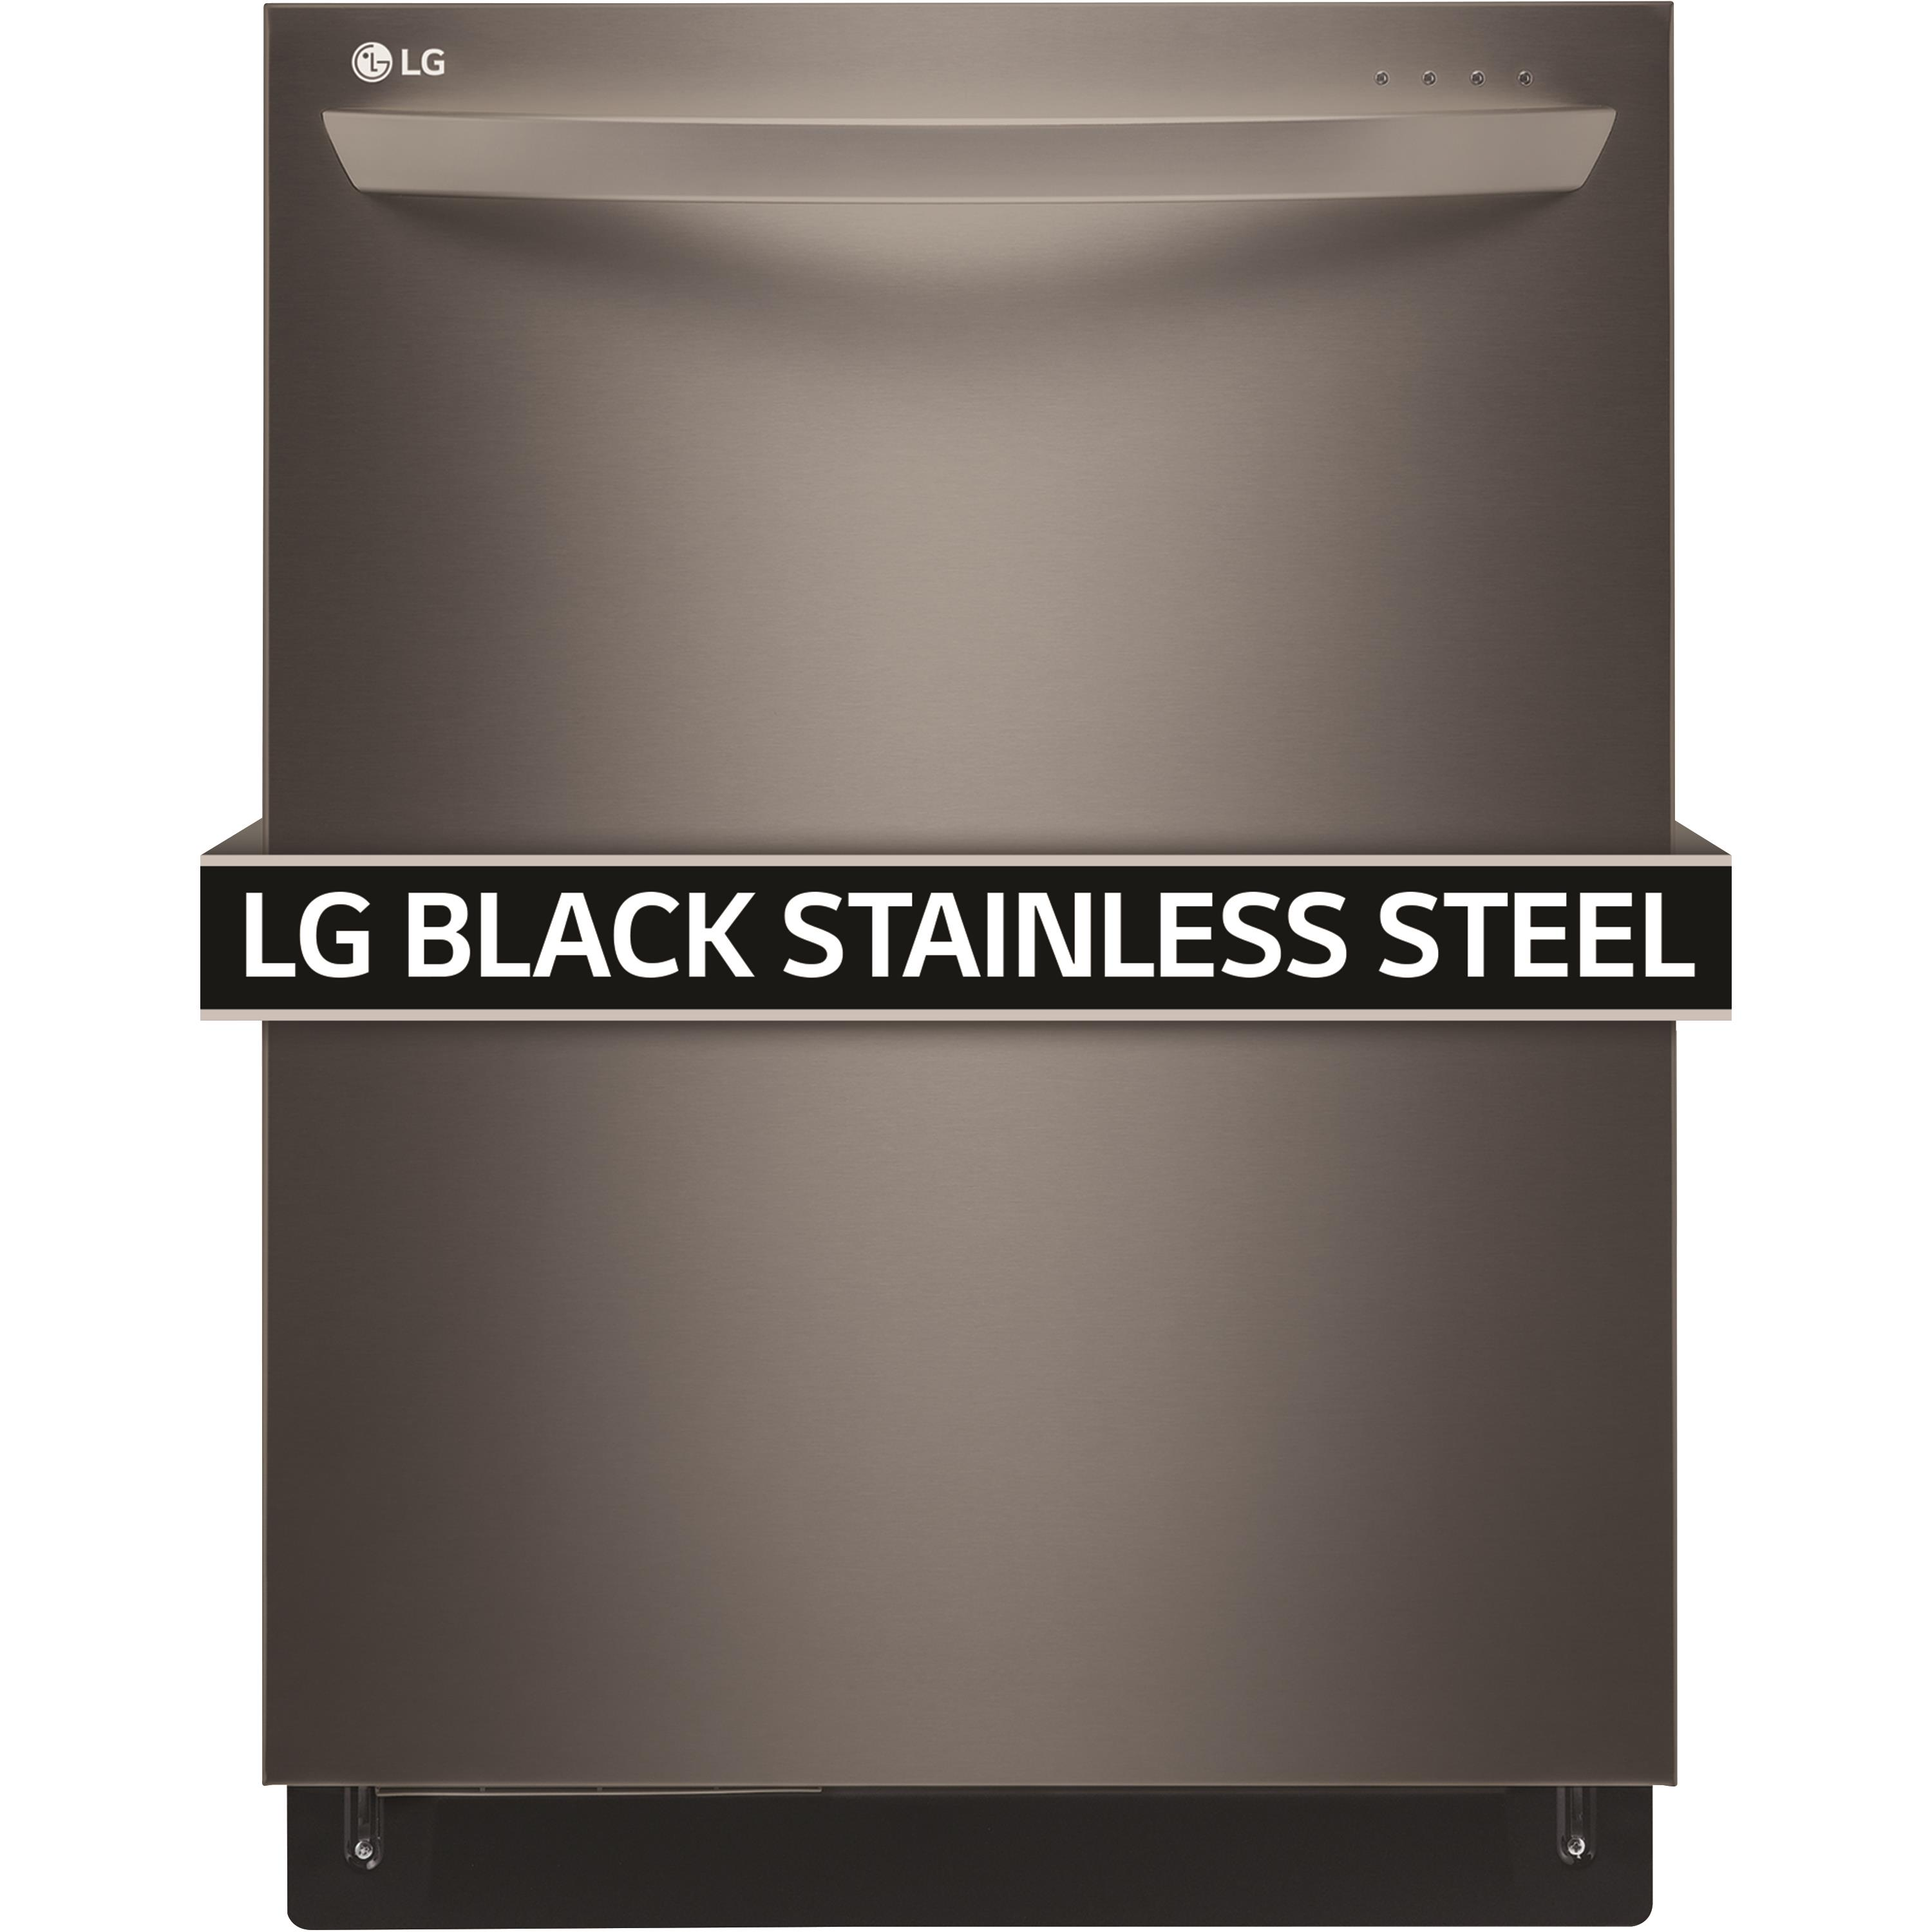 LG Appliances Dishwashers- LG Fully Integrated Dishwasher - Item Number: LDT9965BD